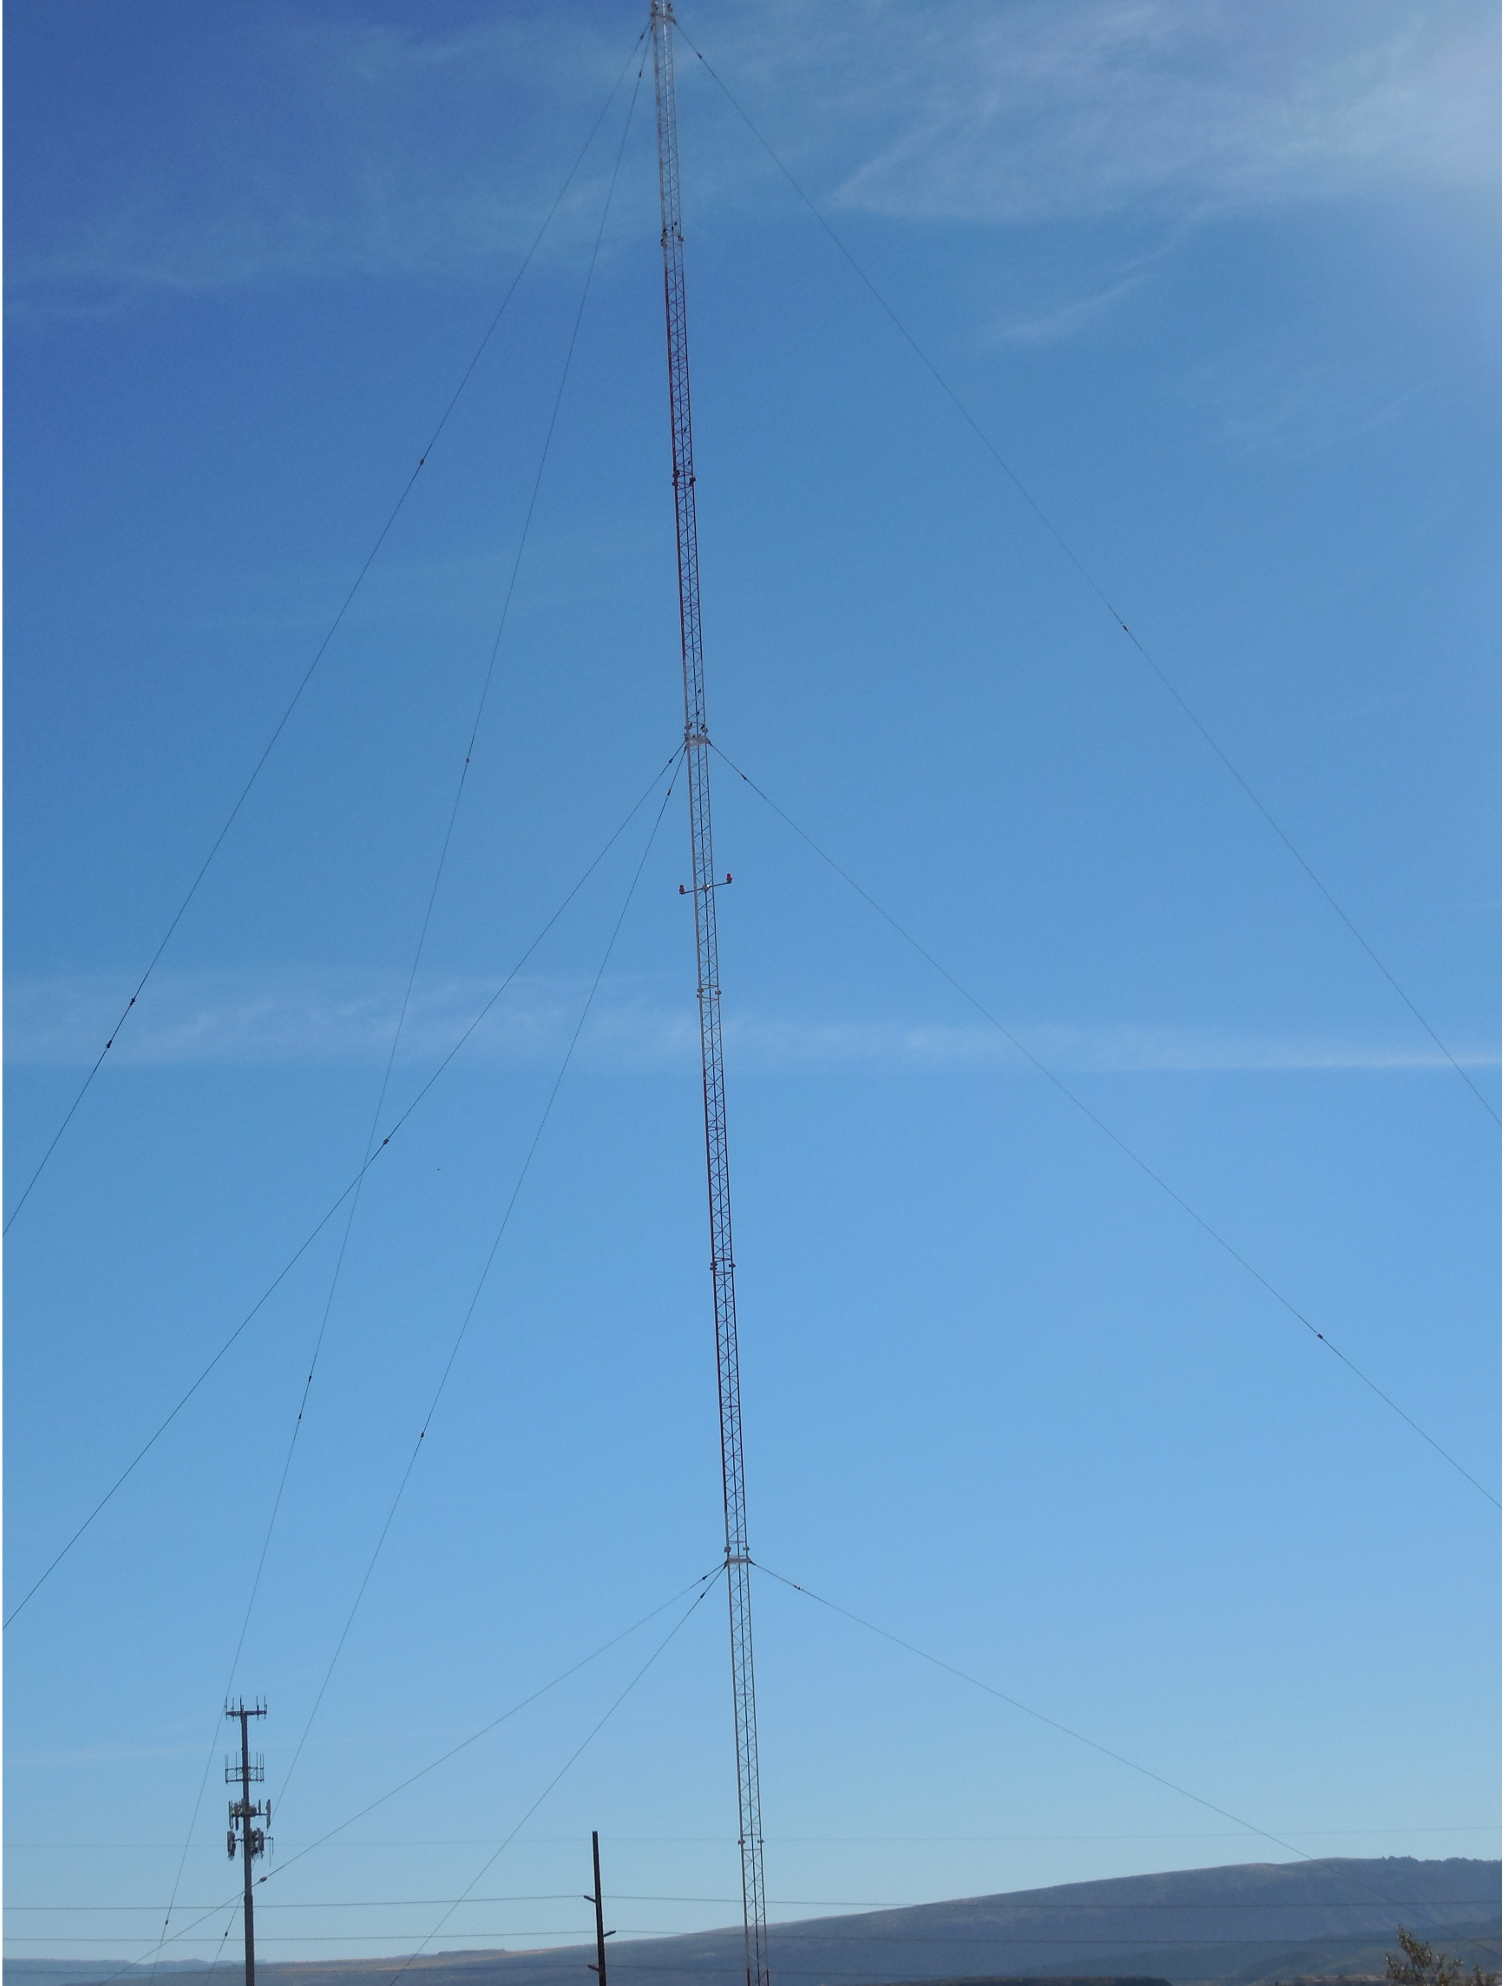 The KHKR 1210 AM tower in Washington City, a landmark visible from Interstate 15, was taken down Monday, Washington, Utah, Nov. 14, 2016 | Photo by Julie Applegate, St. George News